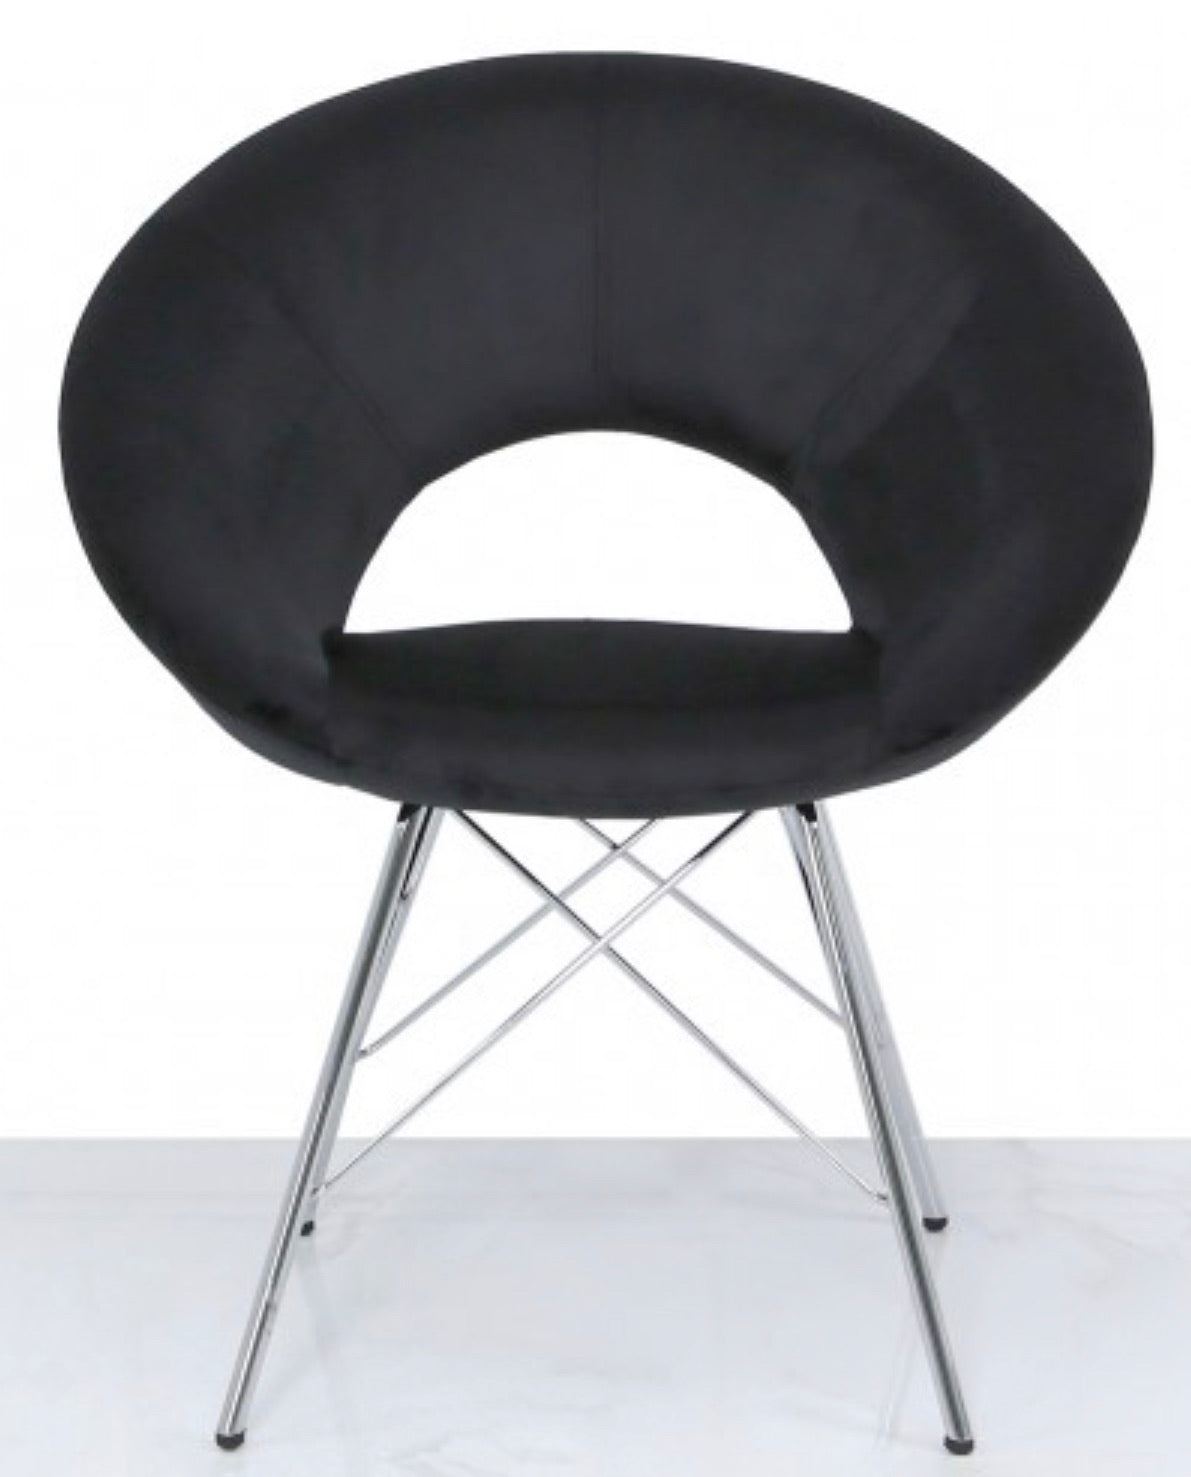 Orb Chair - Black